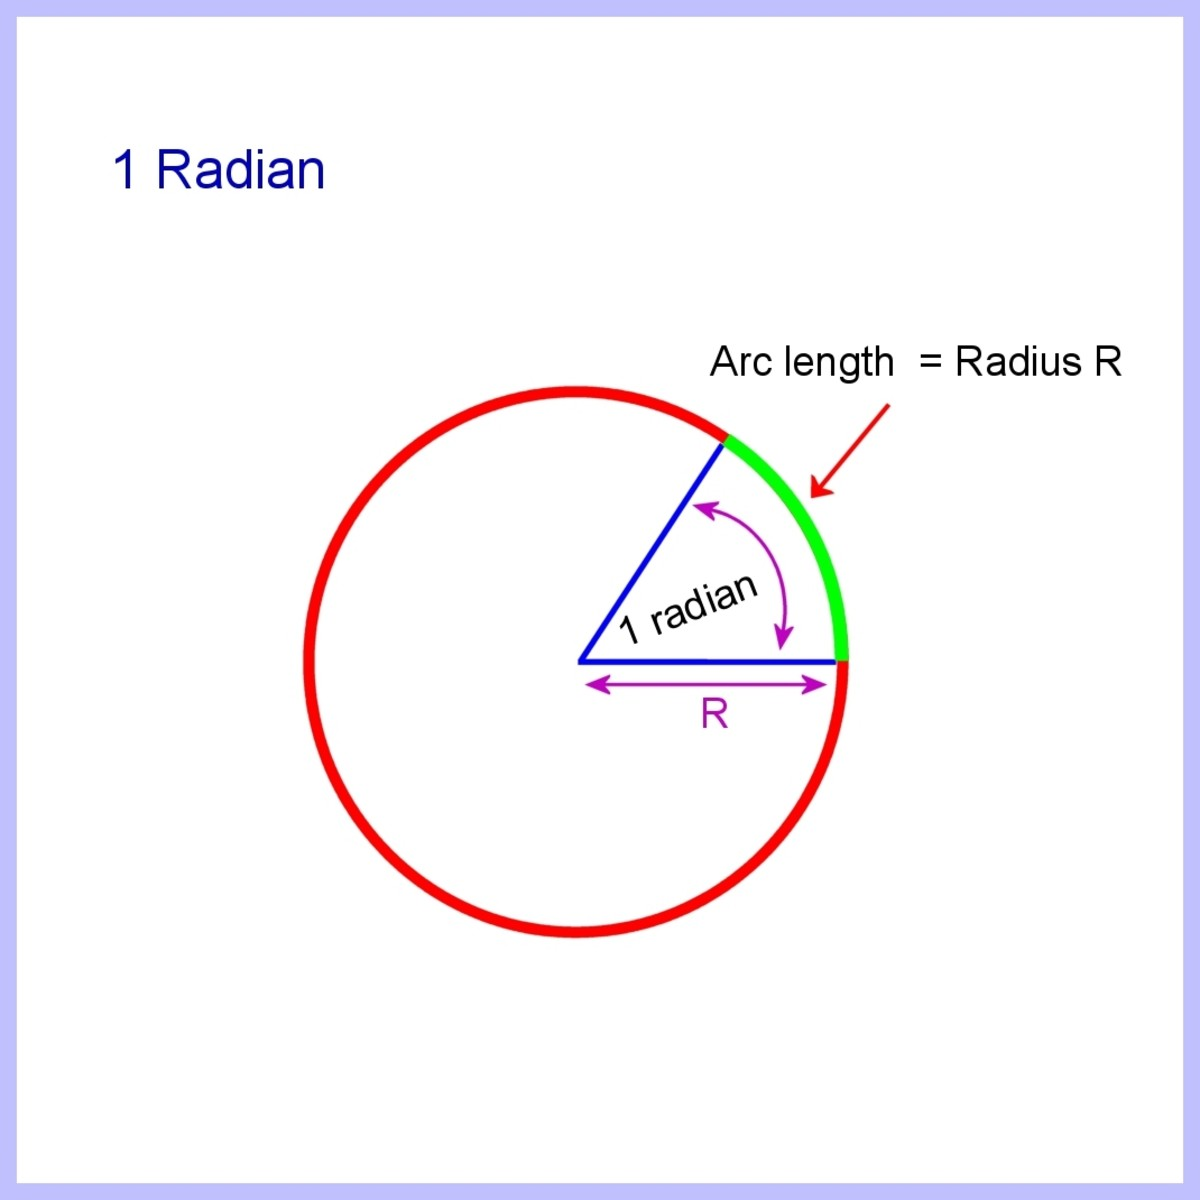 A radian is the angle subtended by an arc of length equal to the radius of a circle.